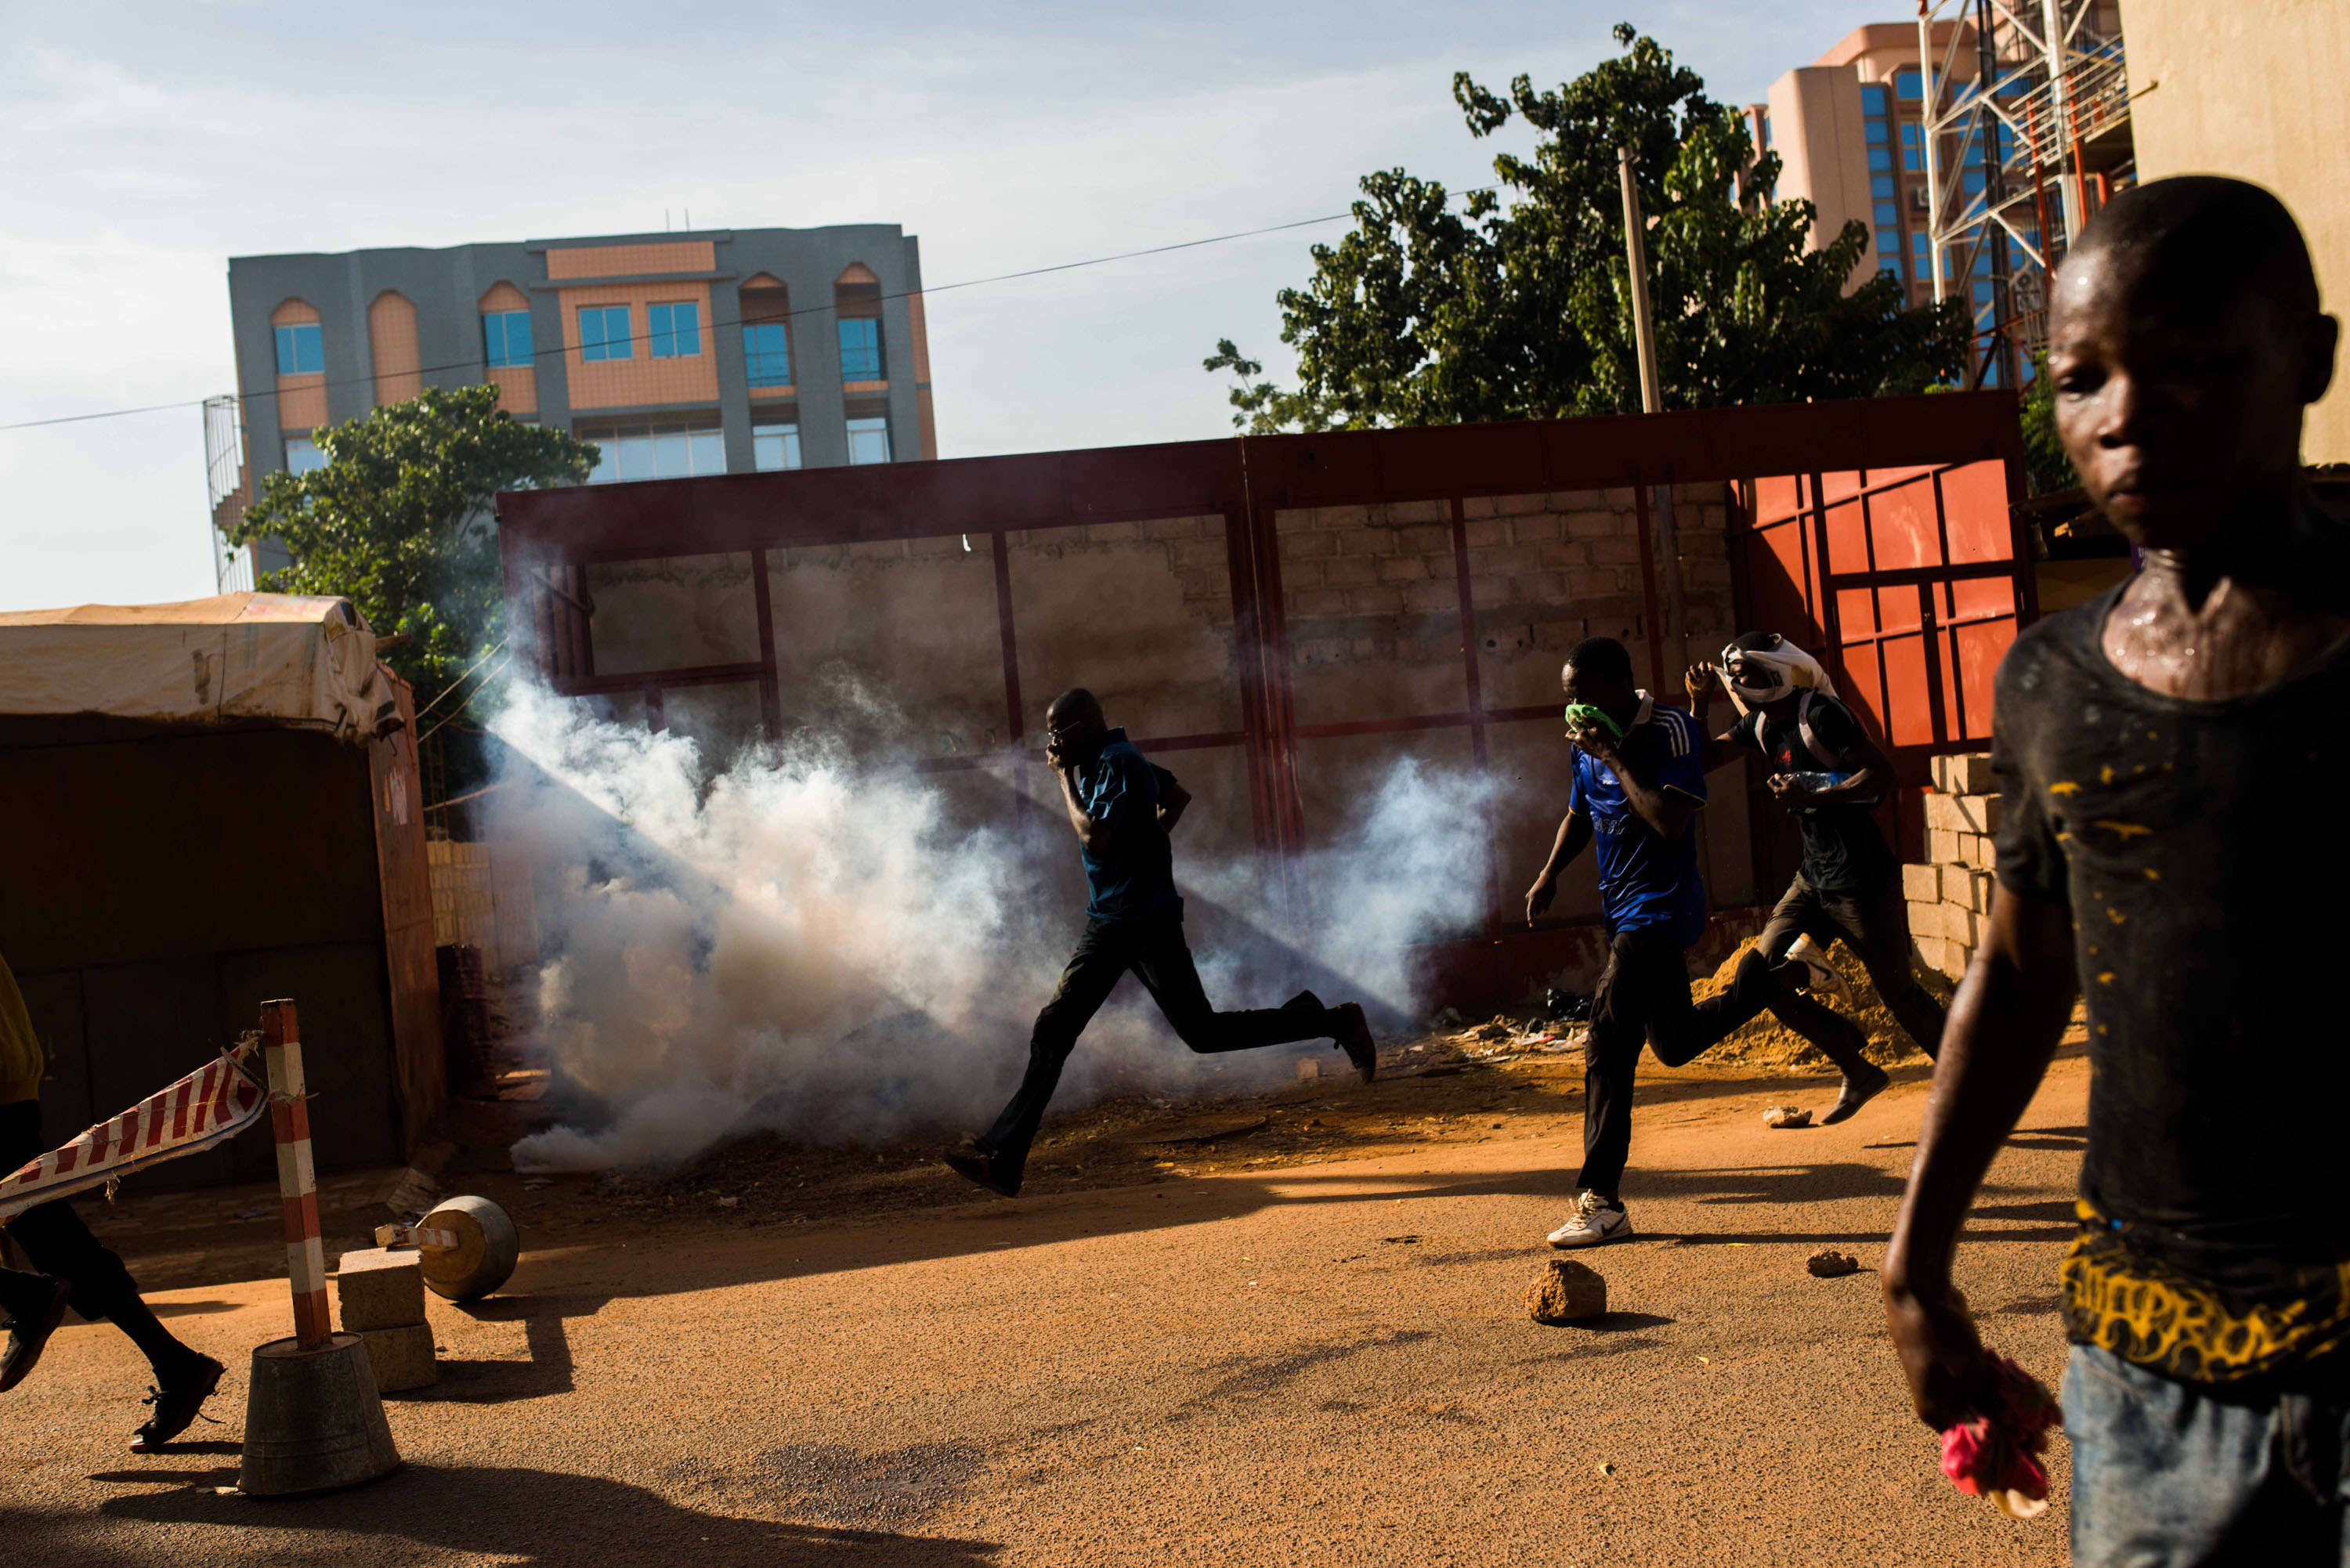 Following violent protests, president of Burkina Faso steps down